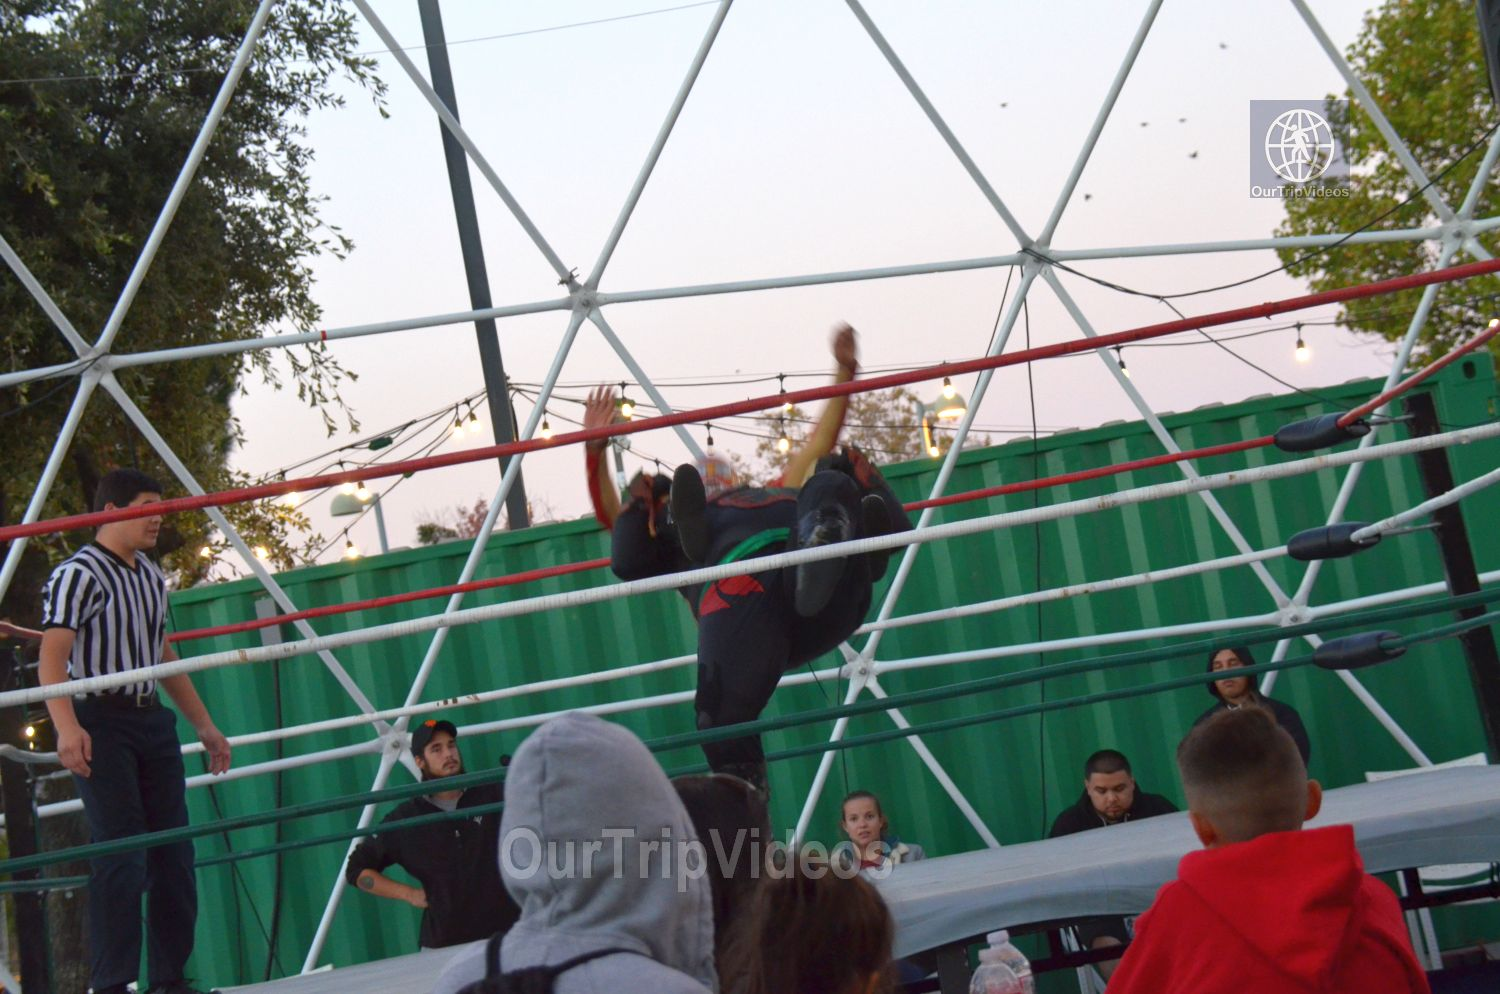 Throwdown at the Thunderdome (Luchador Wrestling), Fremont, CA, USA - Picture 8 of 25